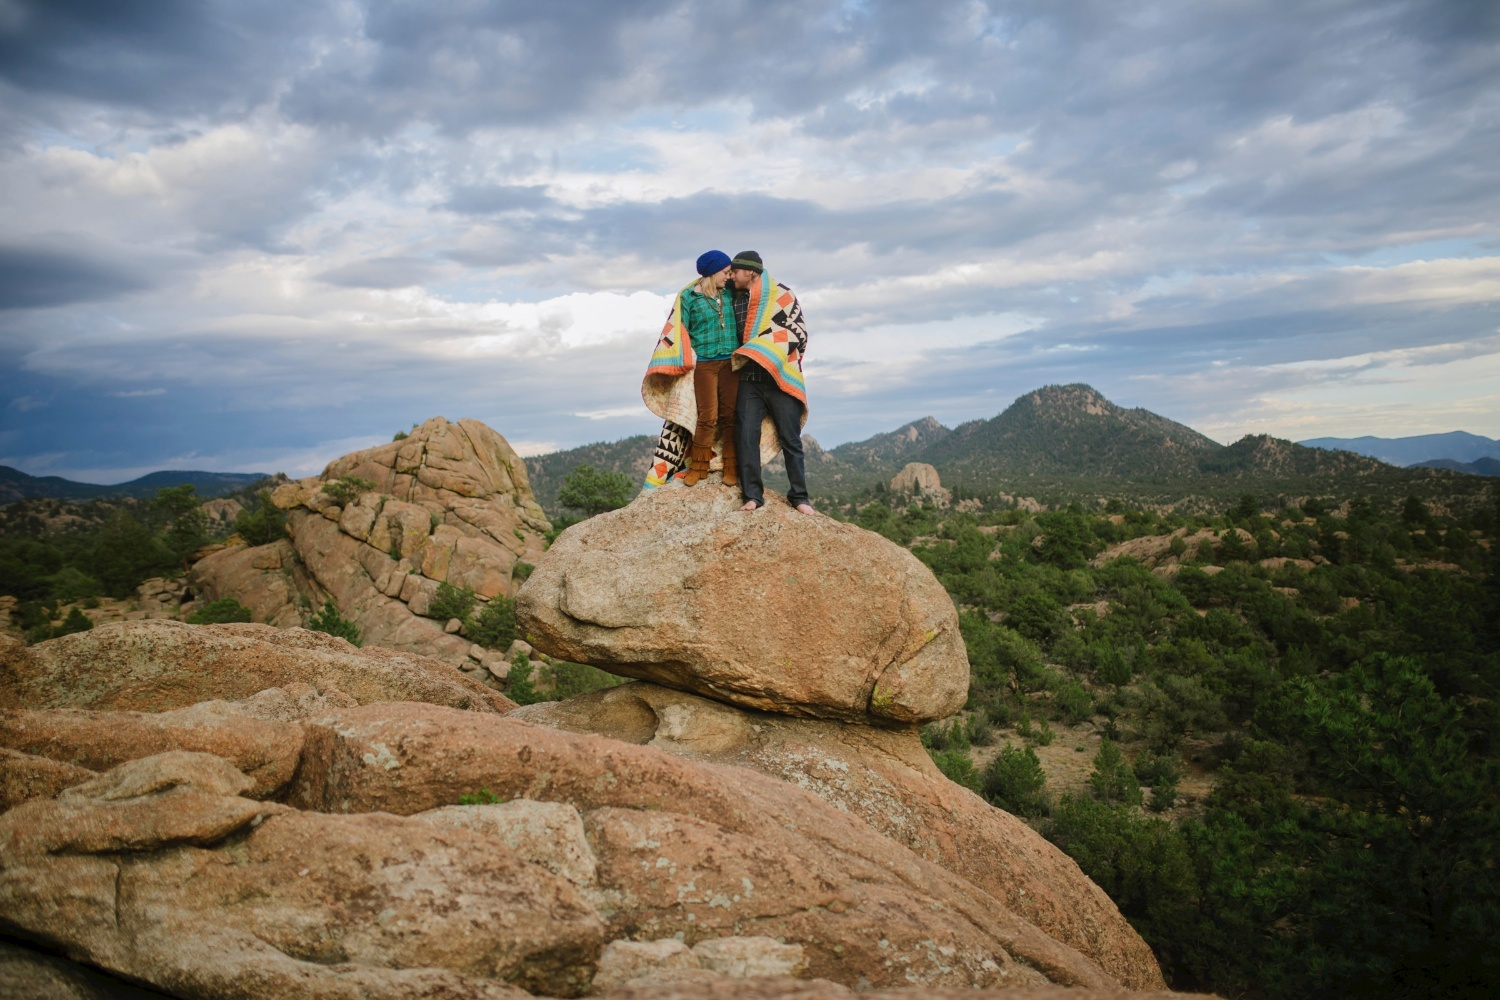 Epic adventurous engagement photo shoot by Maddie Mae Photography